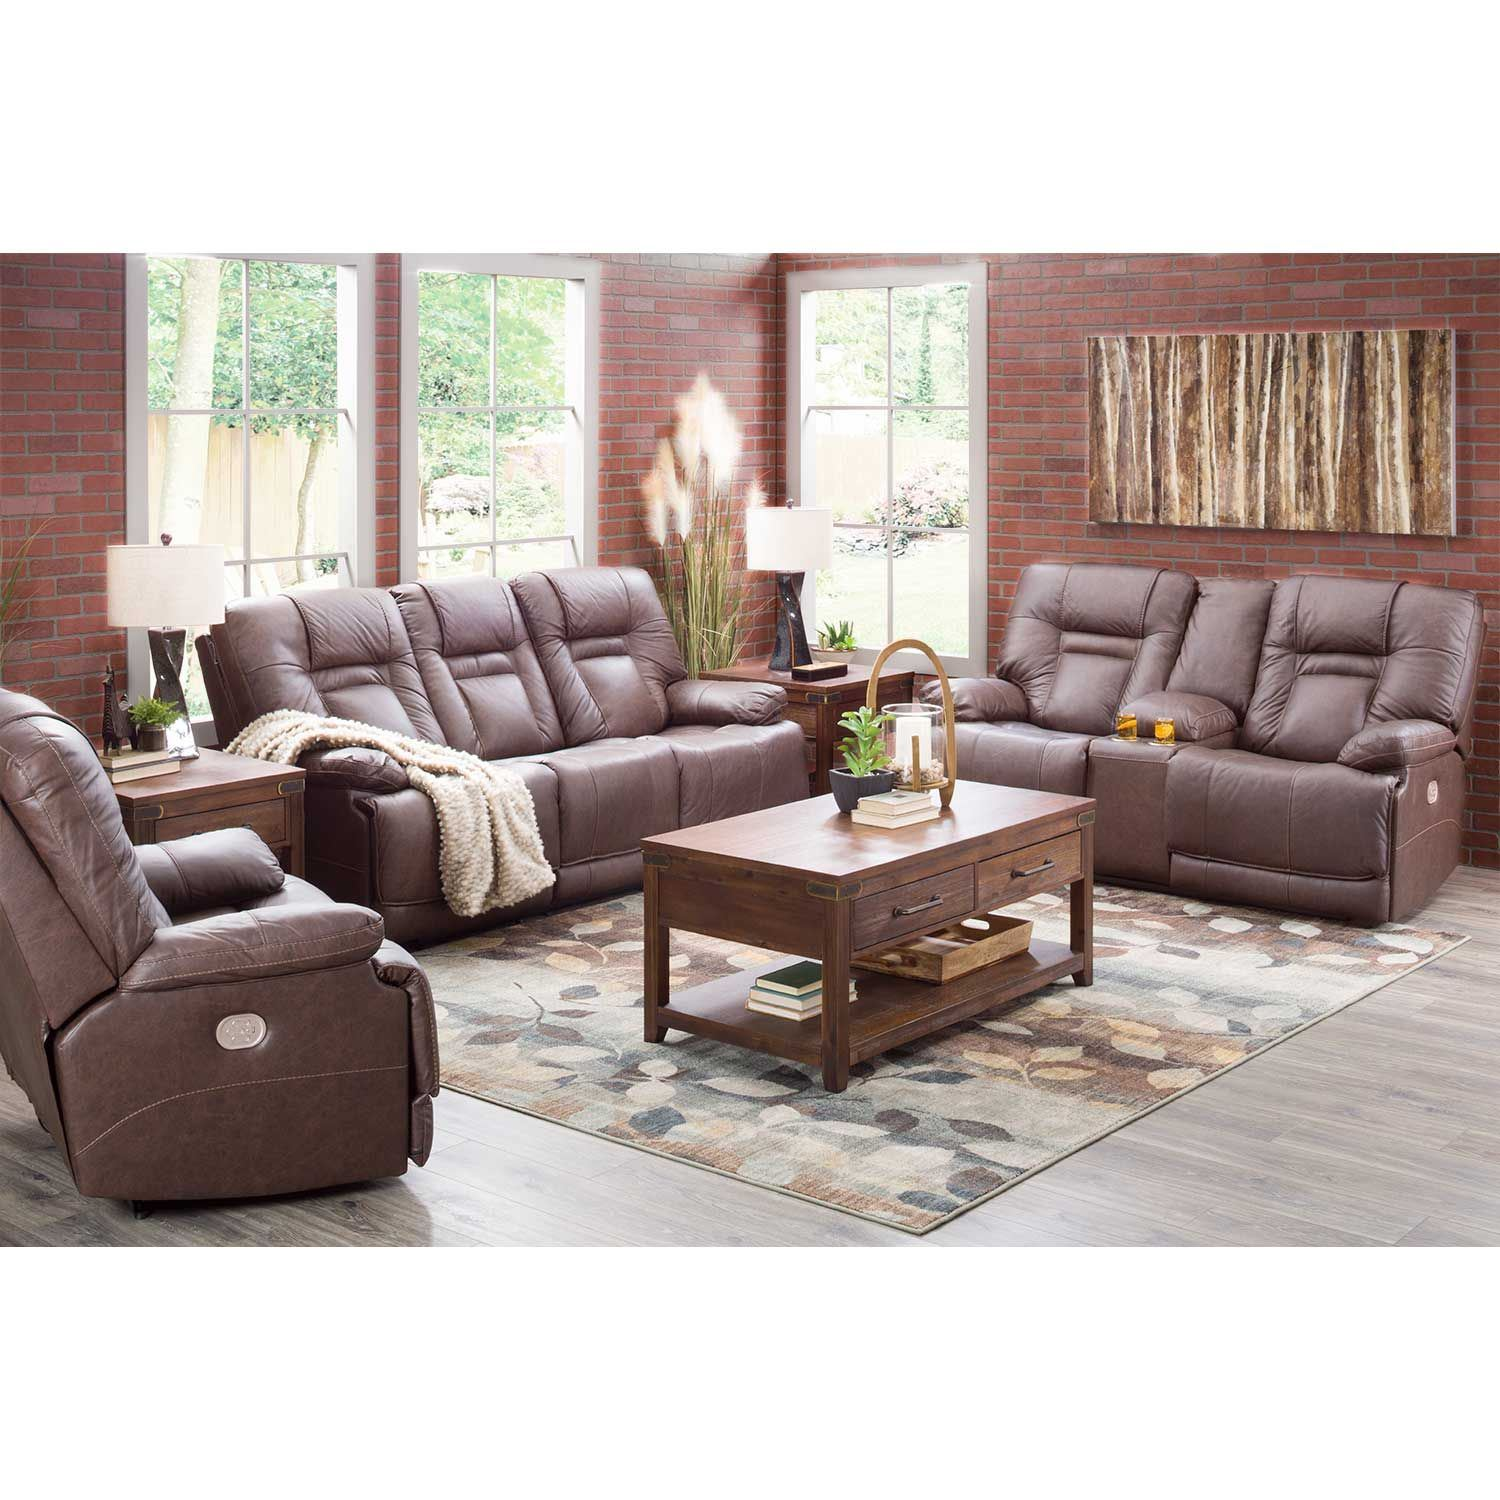 Picture of Wurstrow Umber Italian Leather Power Reclining Loveseat